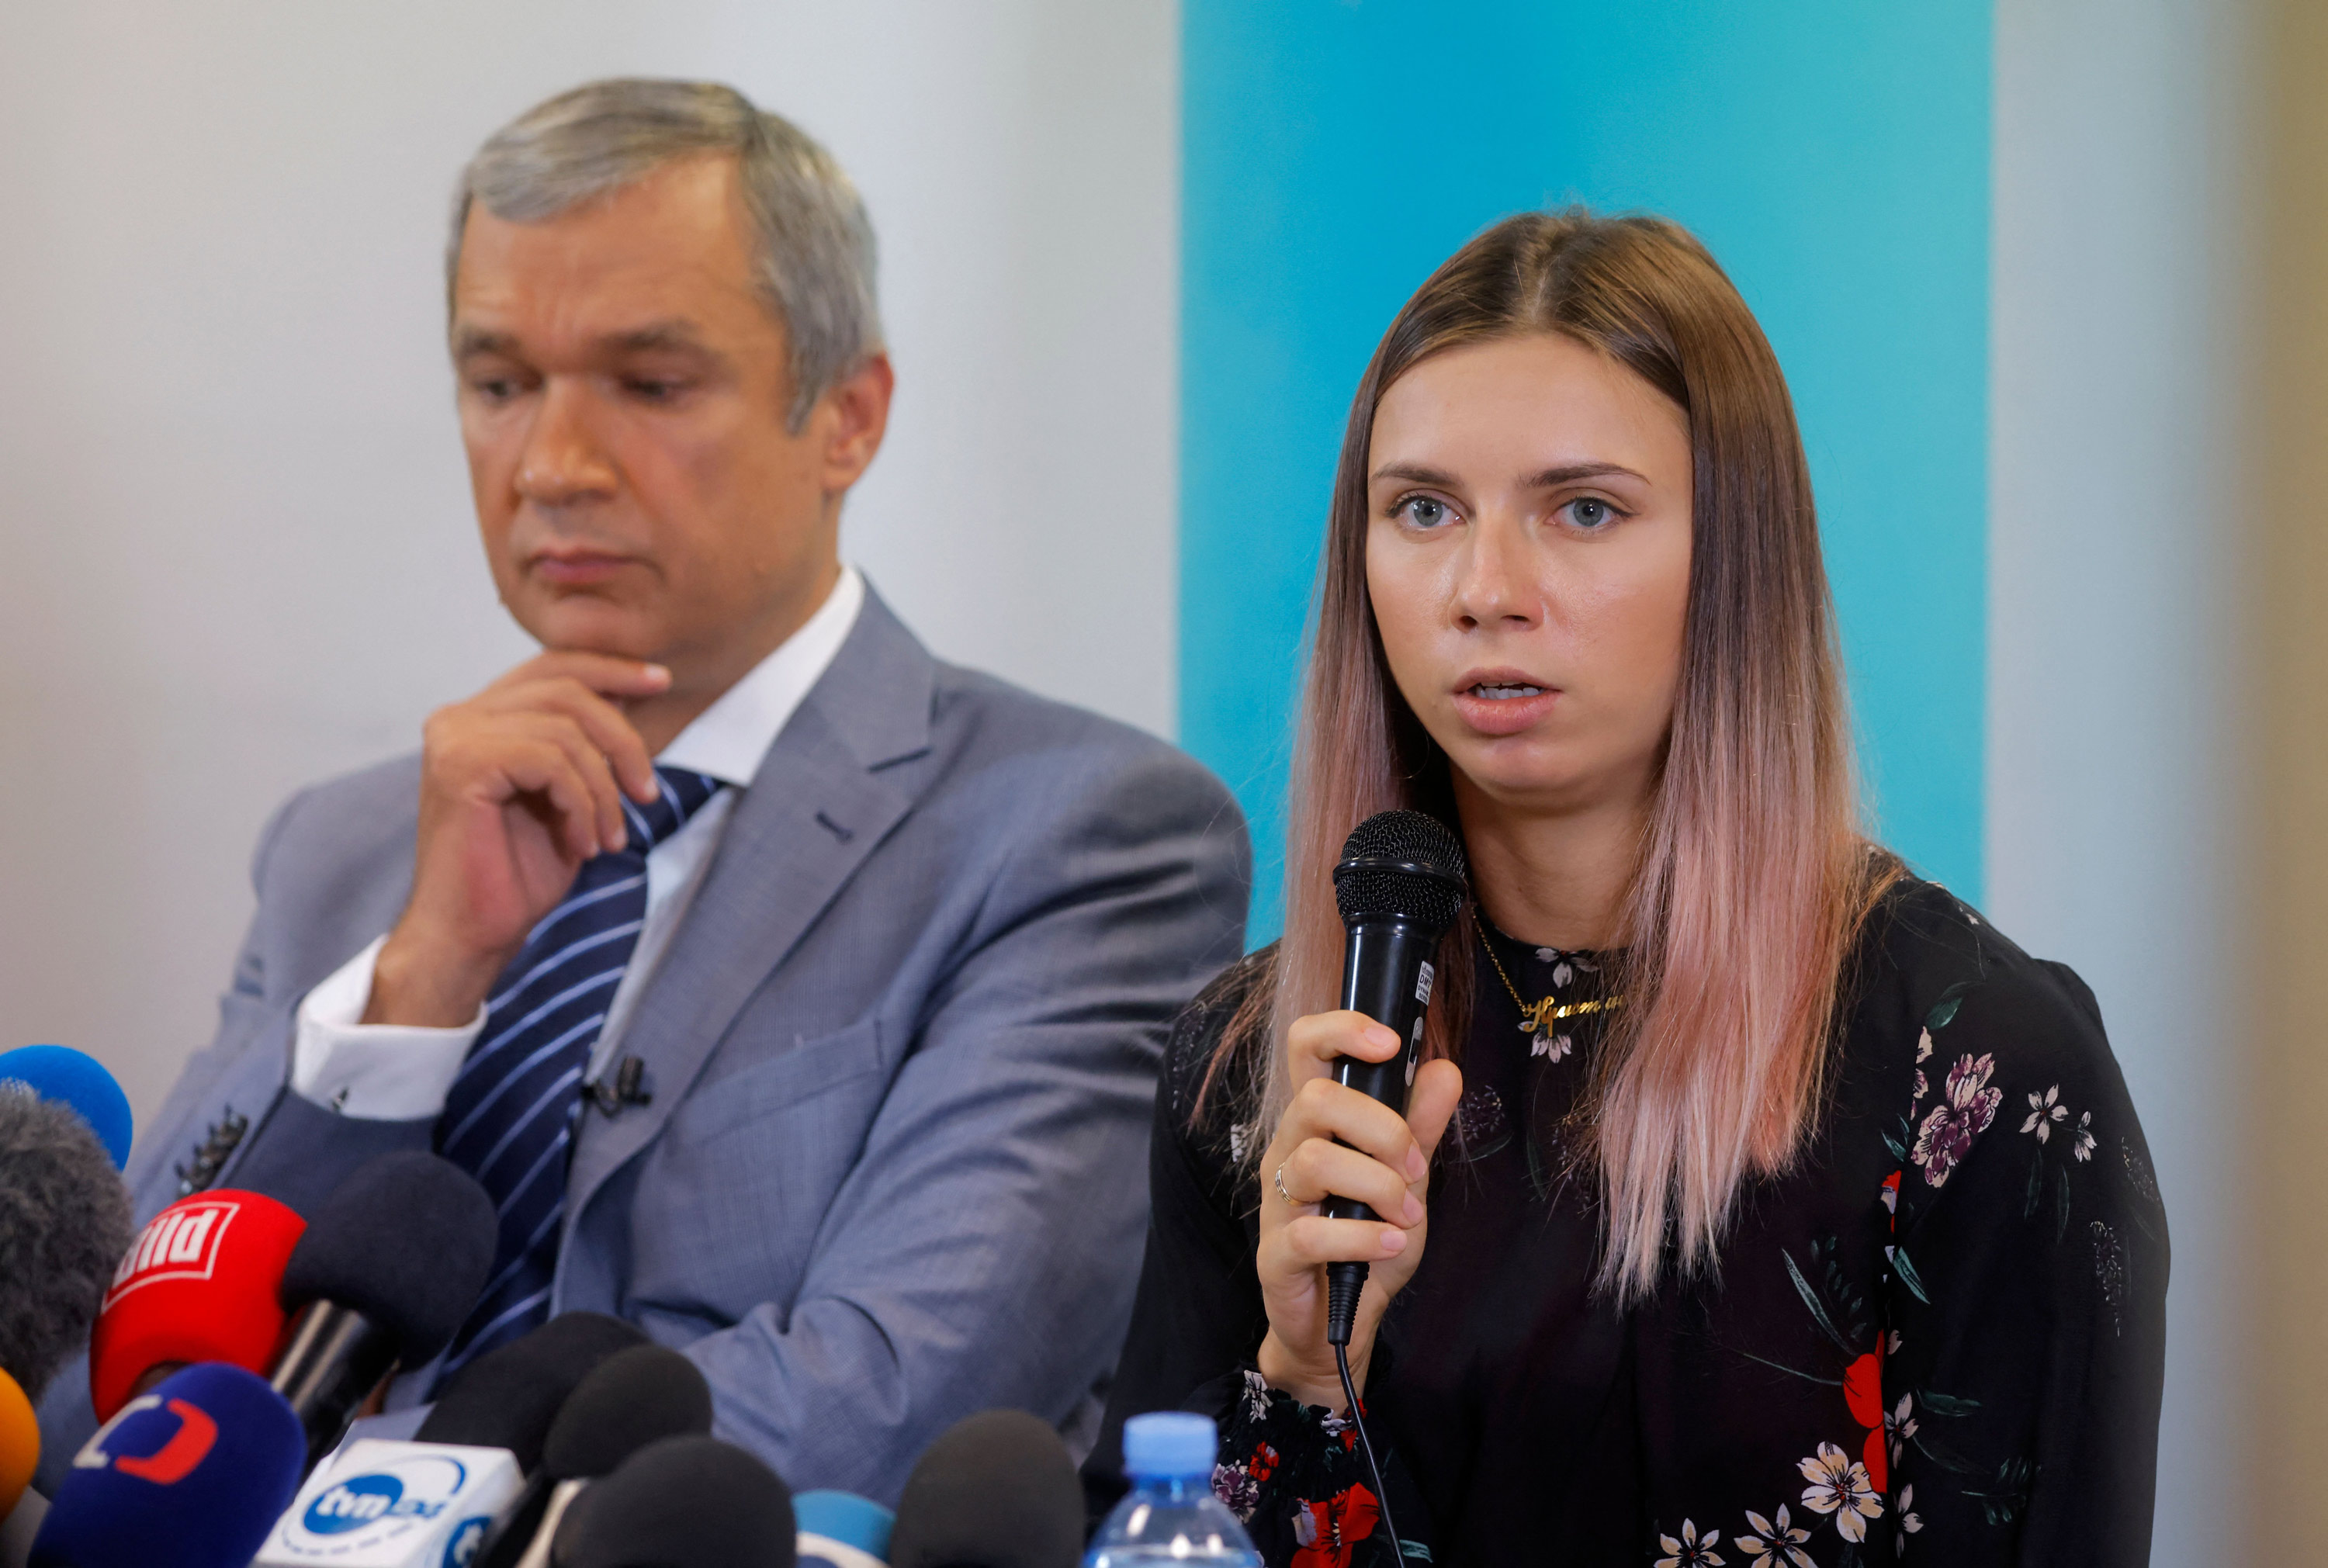 Belarusian Olympic athlete Kristina Timanovskaya, right, and Belarusian opposition politician Pavel Latushko address a press conference on August 5 in Warsaw, Poland.